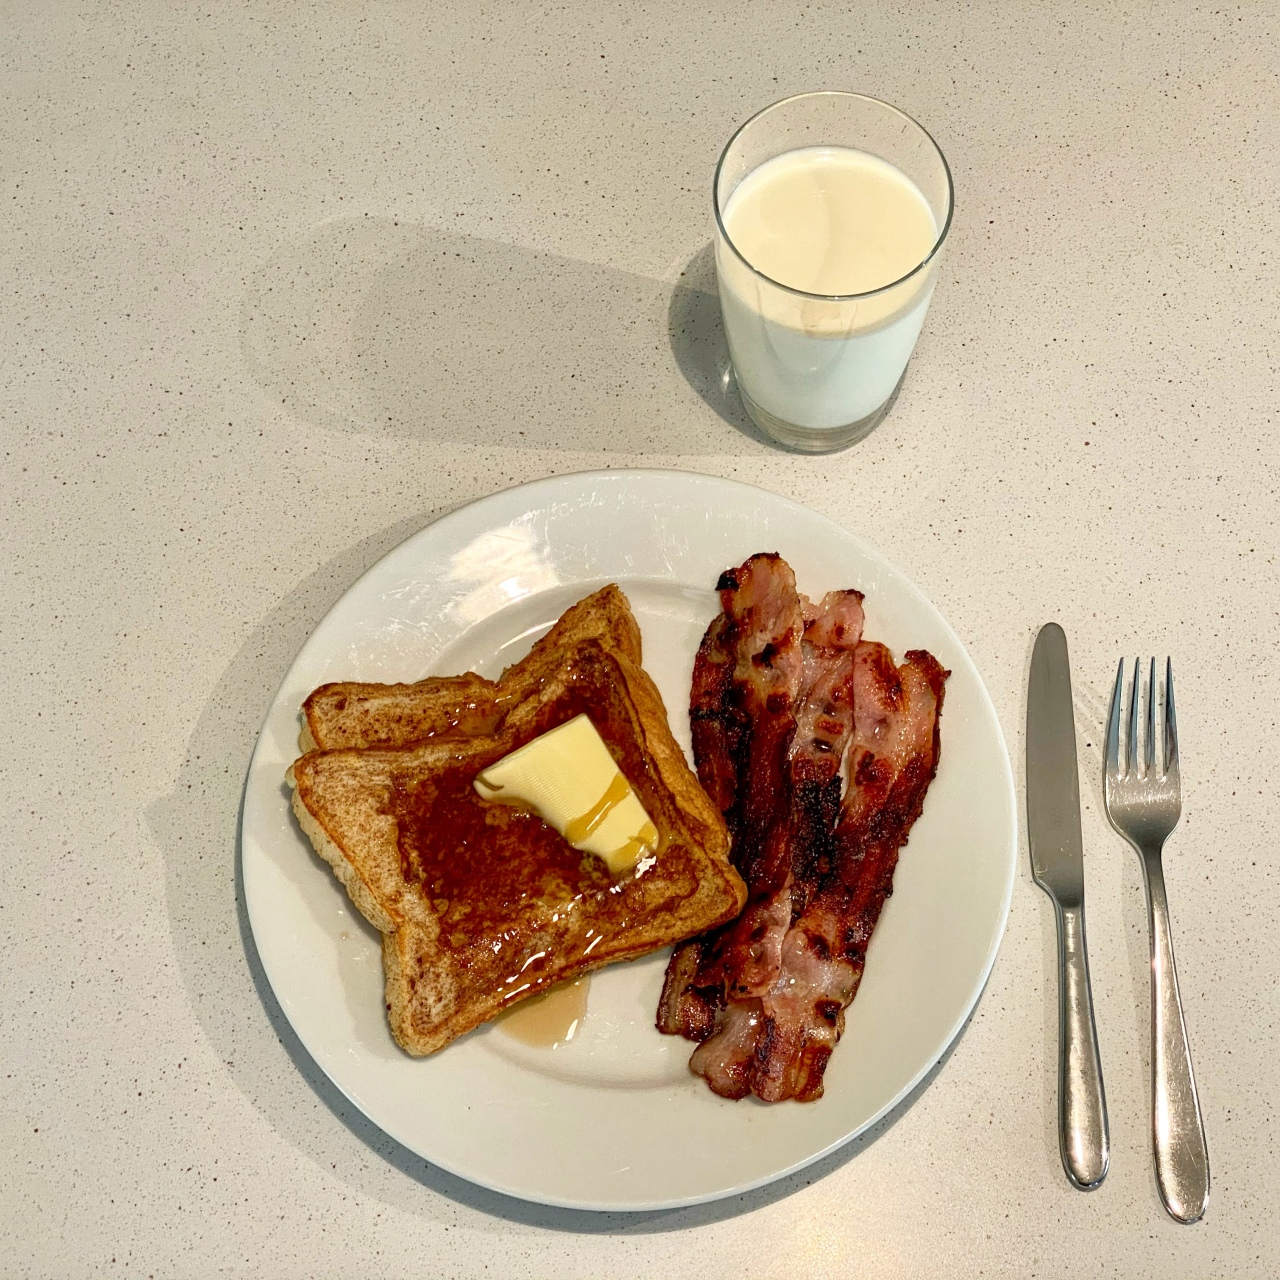 French toast with butter and syrup, and bacon, on a plate, with a knife and fork to the right and glass of milk above it